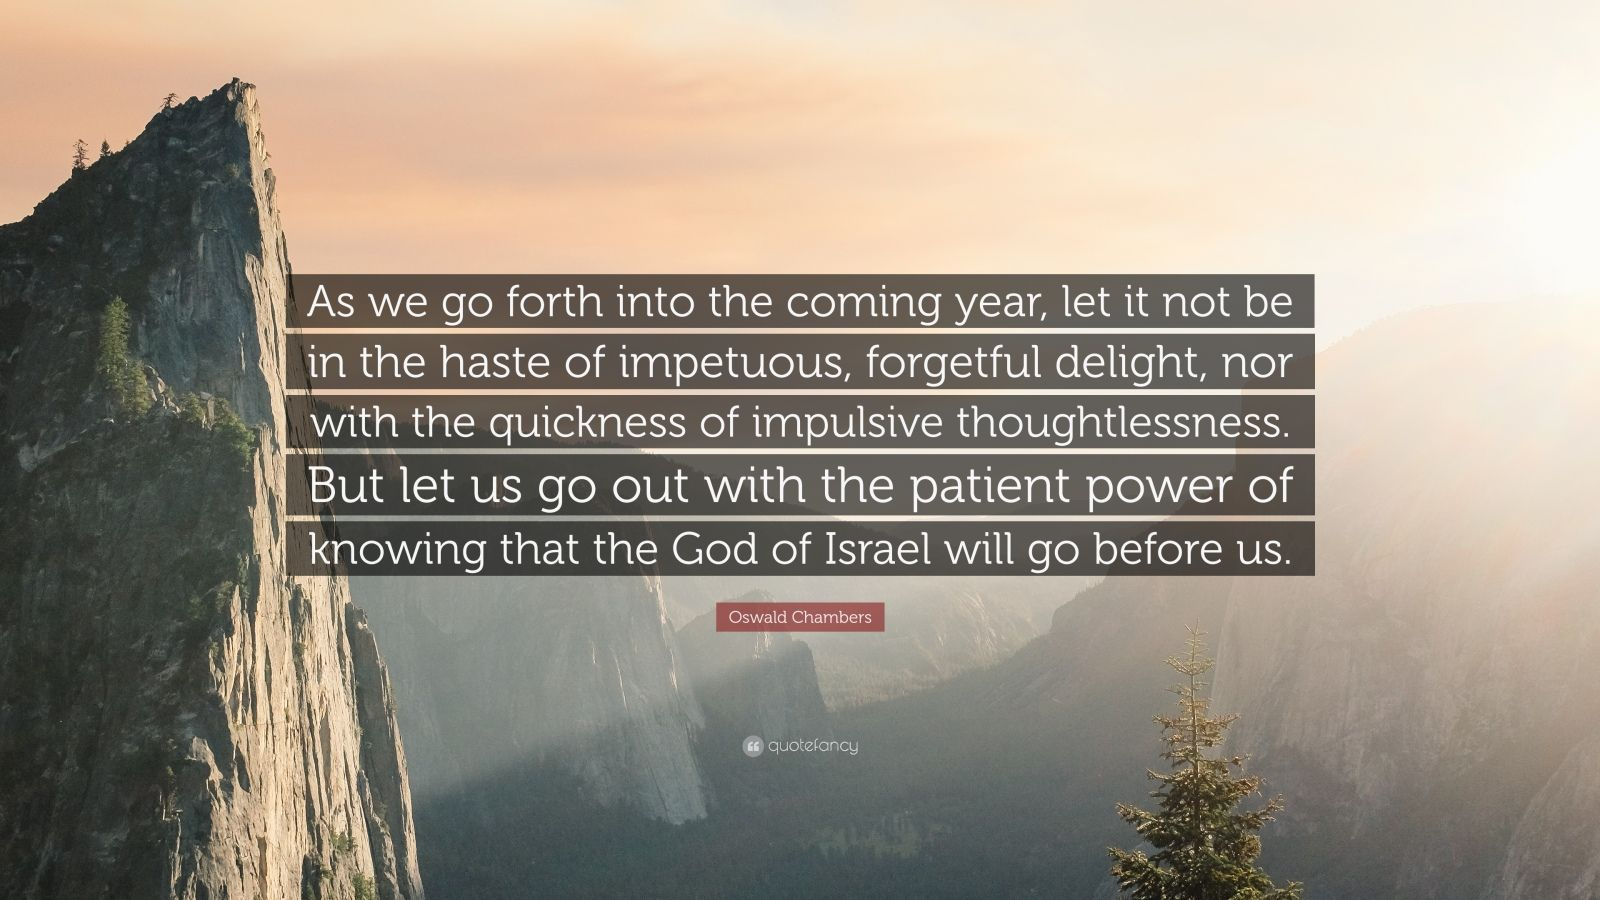 """Oswald Chambers Quote: """"As we go forth into the coming year, let it not be in the haste of impetuous, forgetful delight, nor with the quickness of impulsive thoughtlessness. But let us go out with the patient power of knowing that the God of Israel will go before us."""""""